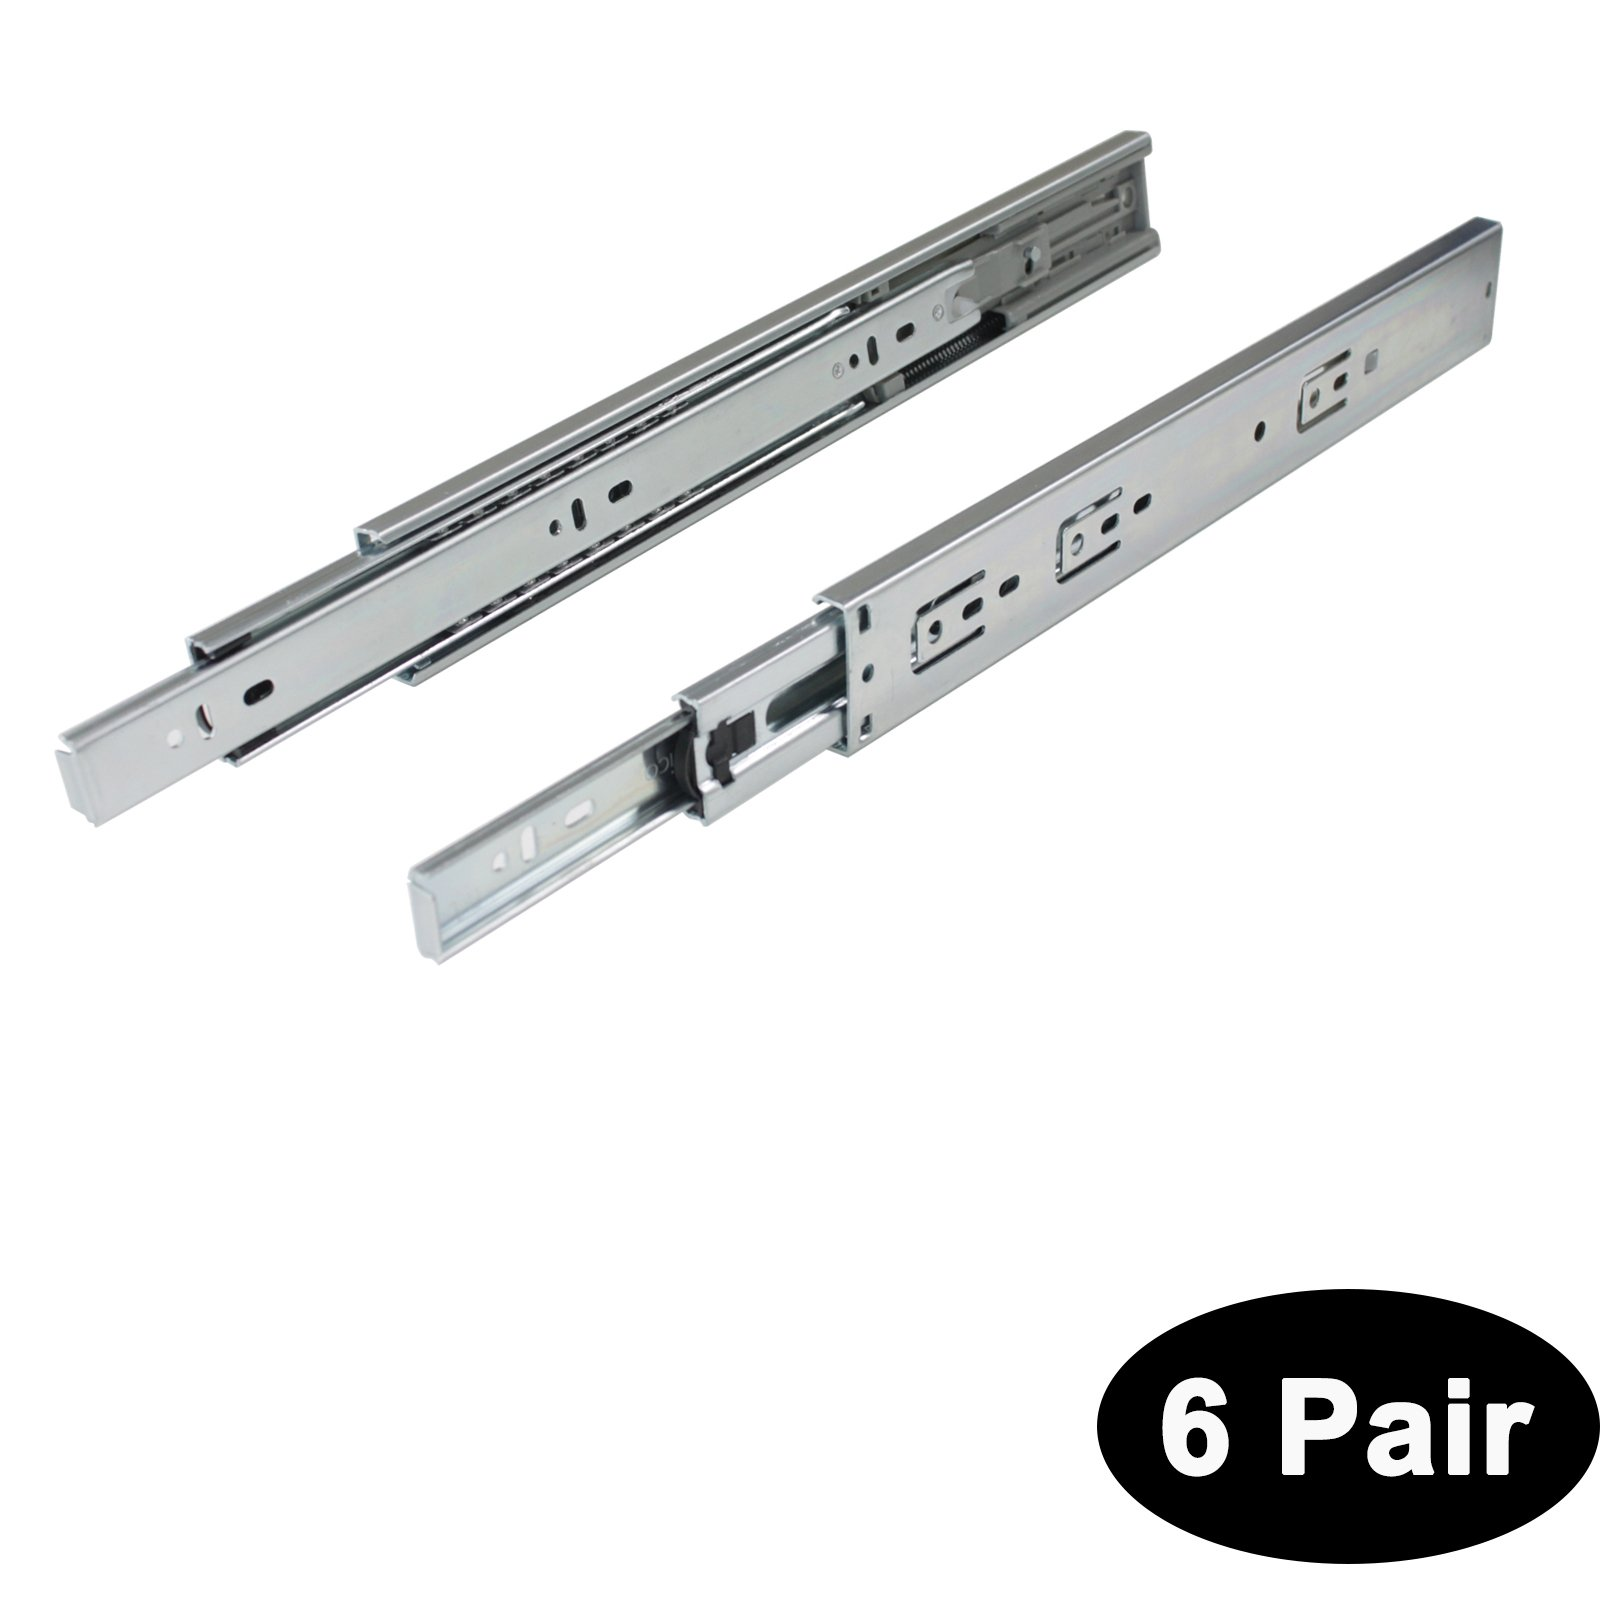 6 Pairs Probrico Furniture Hardware Soft/Self Close Slide Mount Drawer Slides Glides Full Extension 18 inch 3-Folds Ball Bearing 100-Pound Capacity;with Screws and Instructions